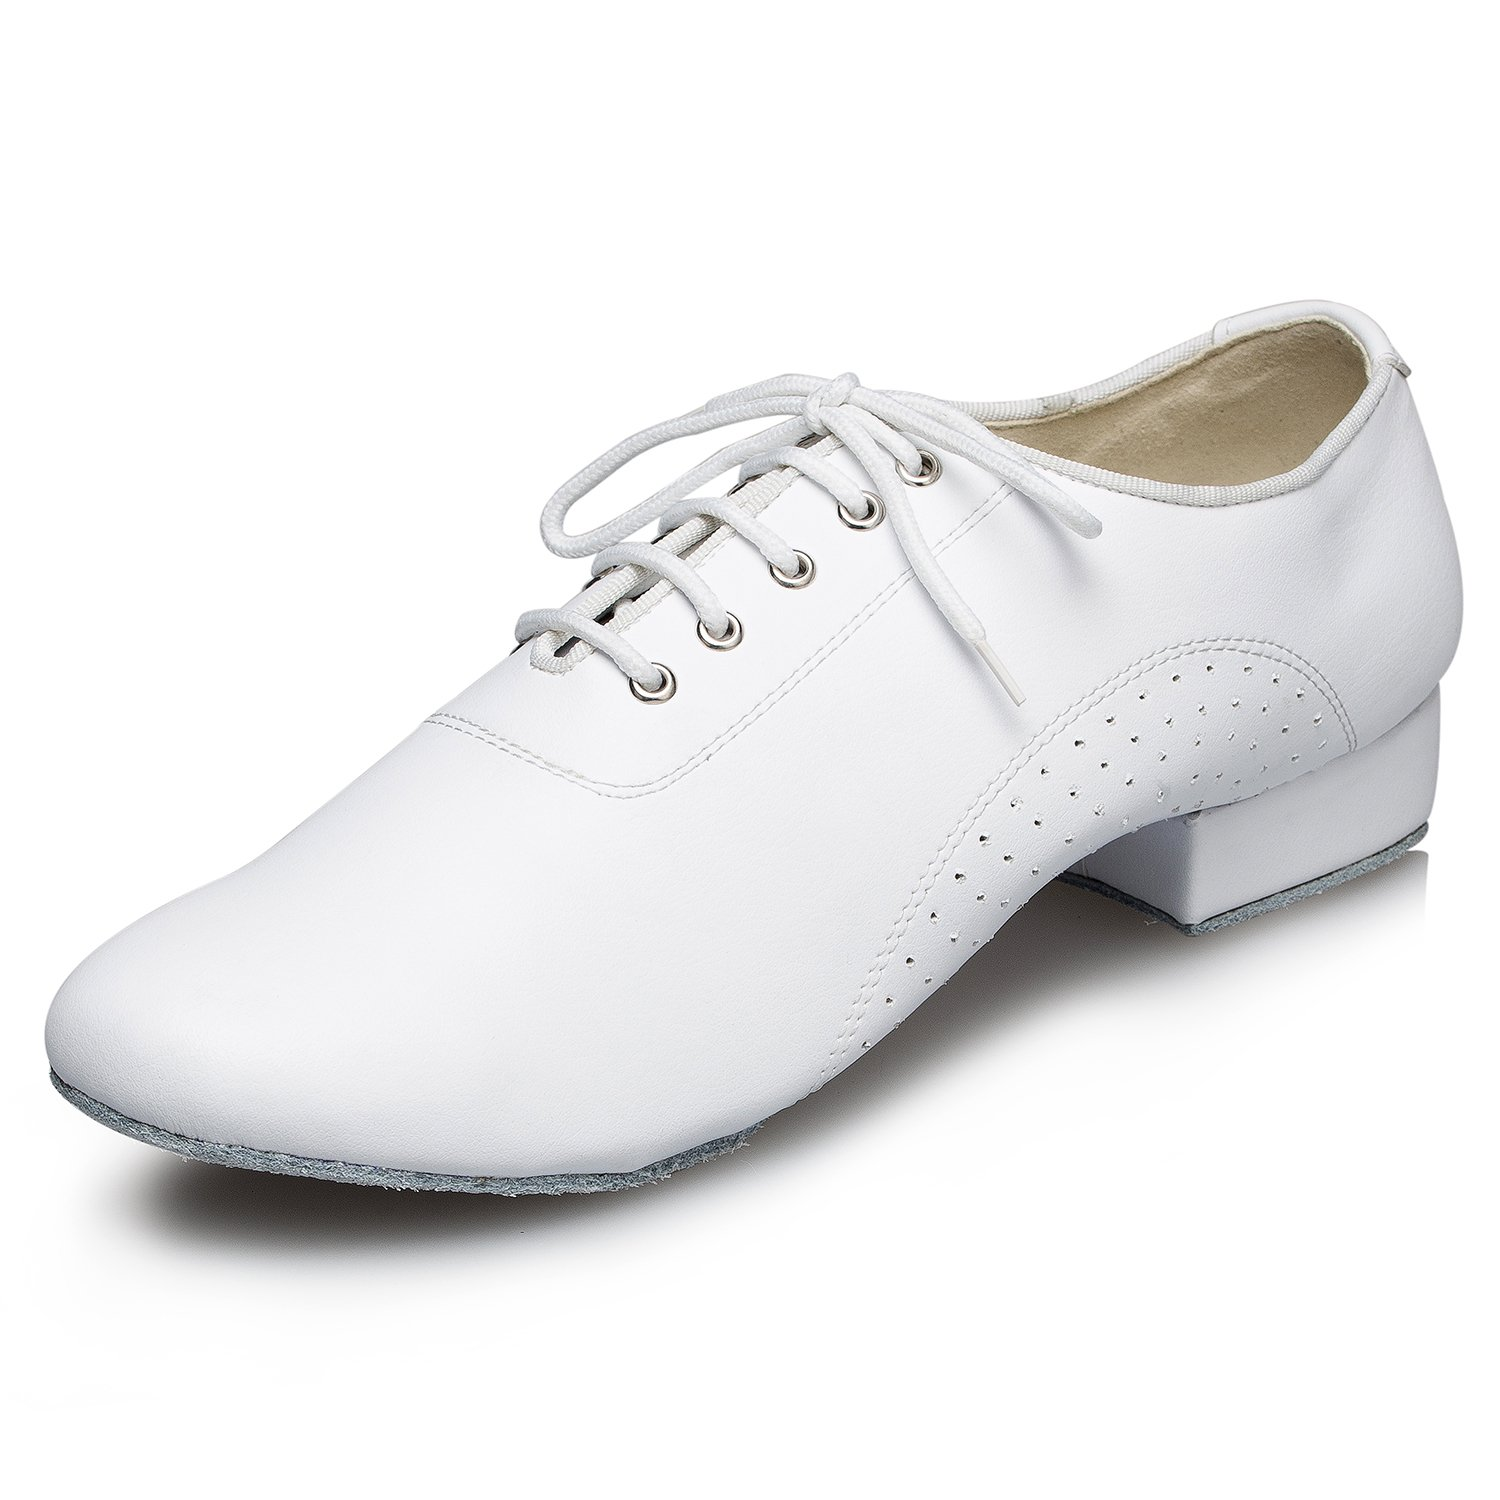 CRC Men's Stylish Round Toe Lace Up White Leather Salsa Tango Ballroom Morden Latin Jazz Rumba Professional Dance Shoes 11 M US